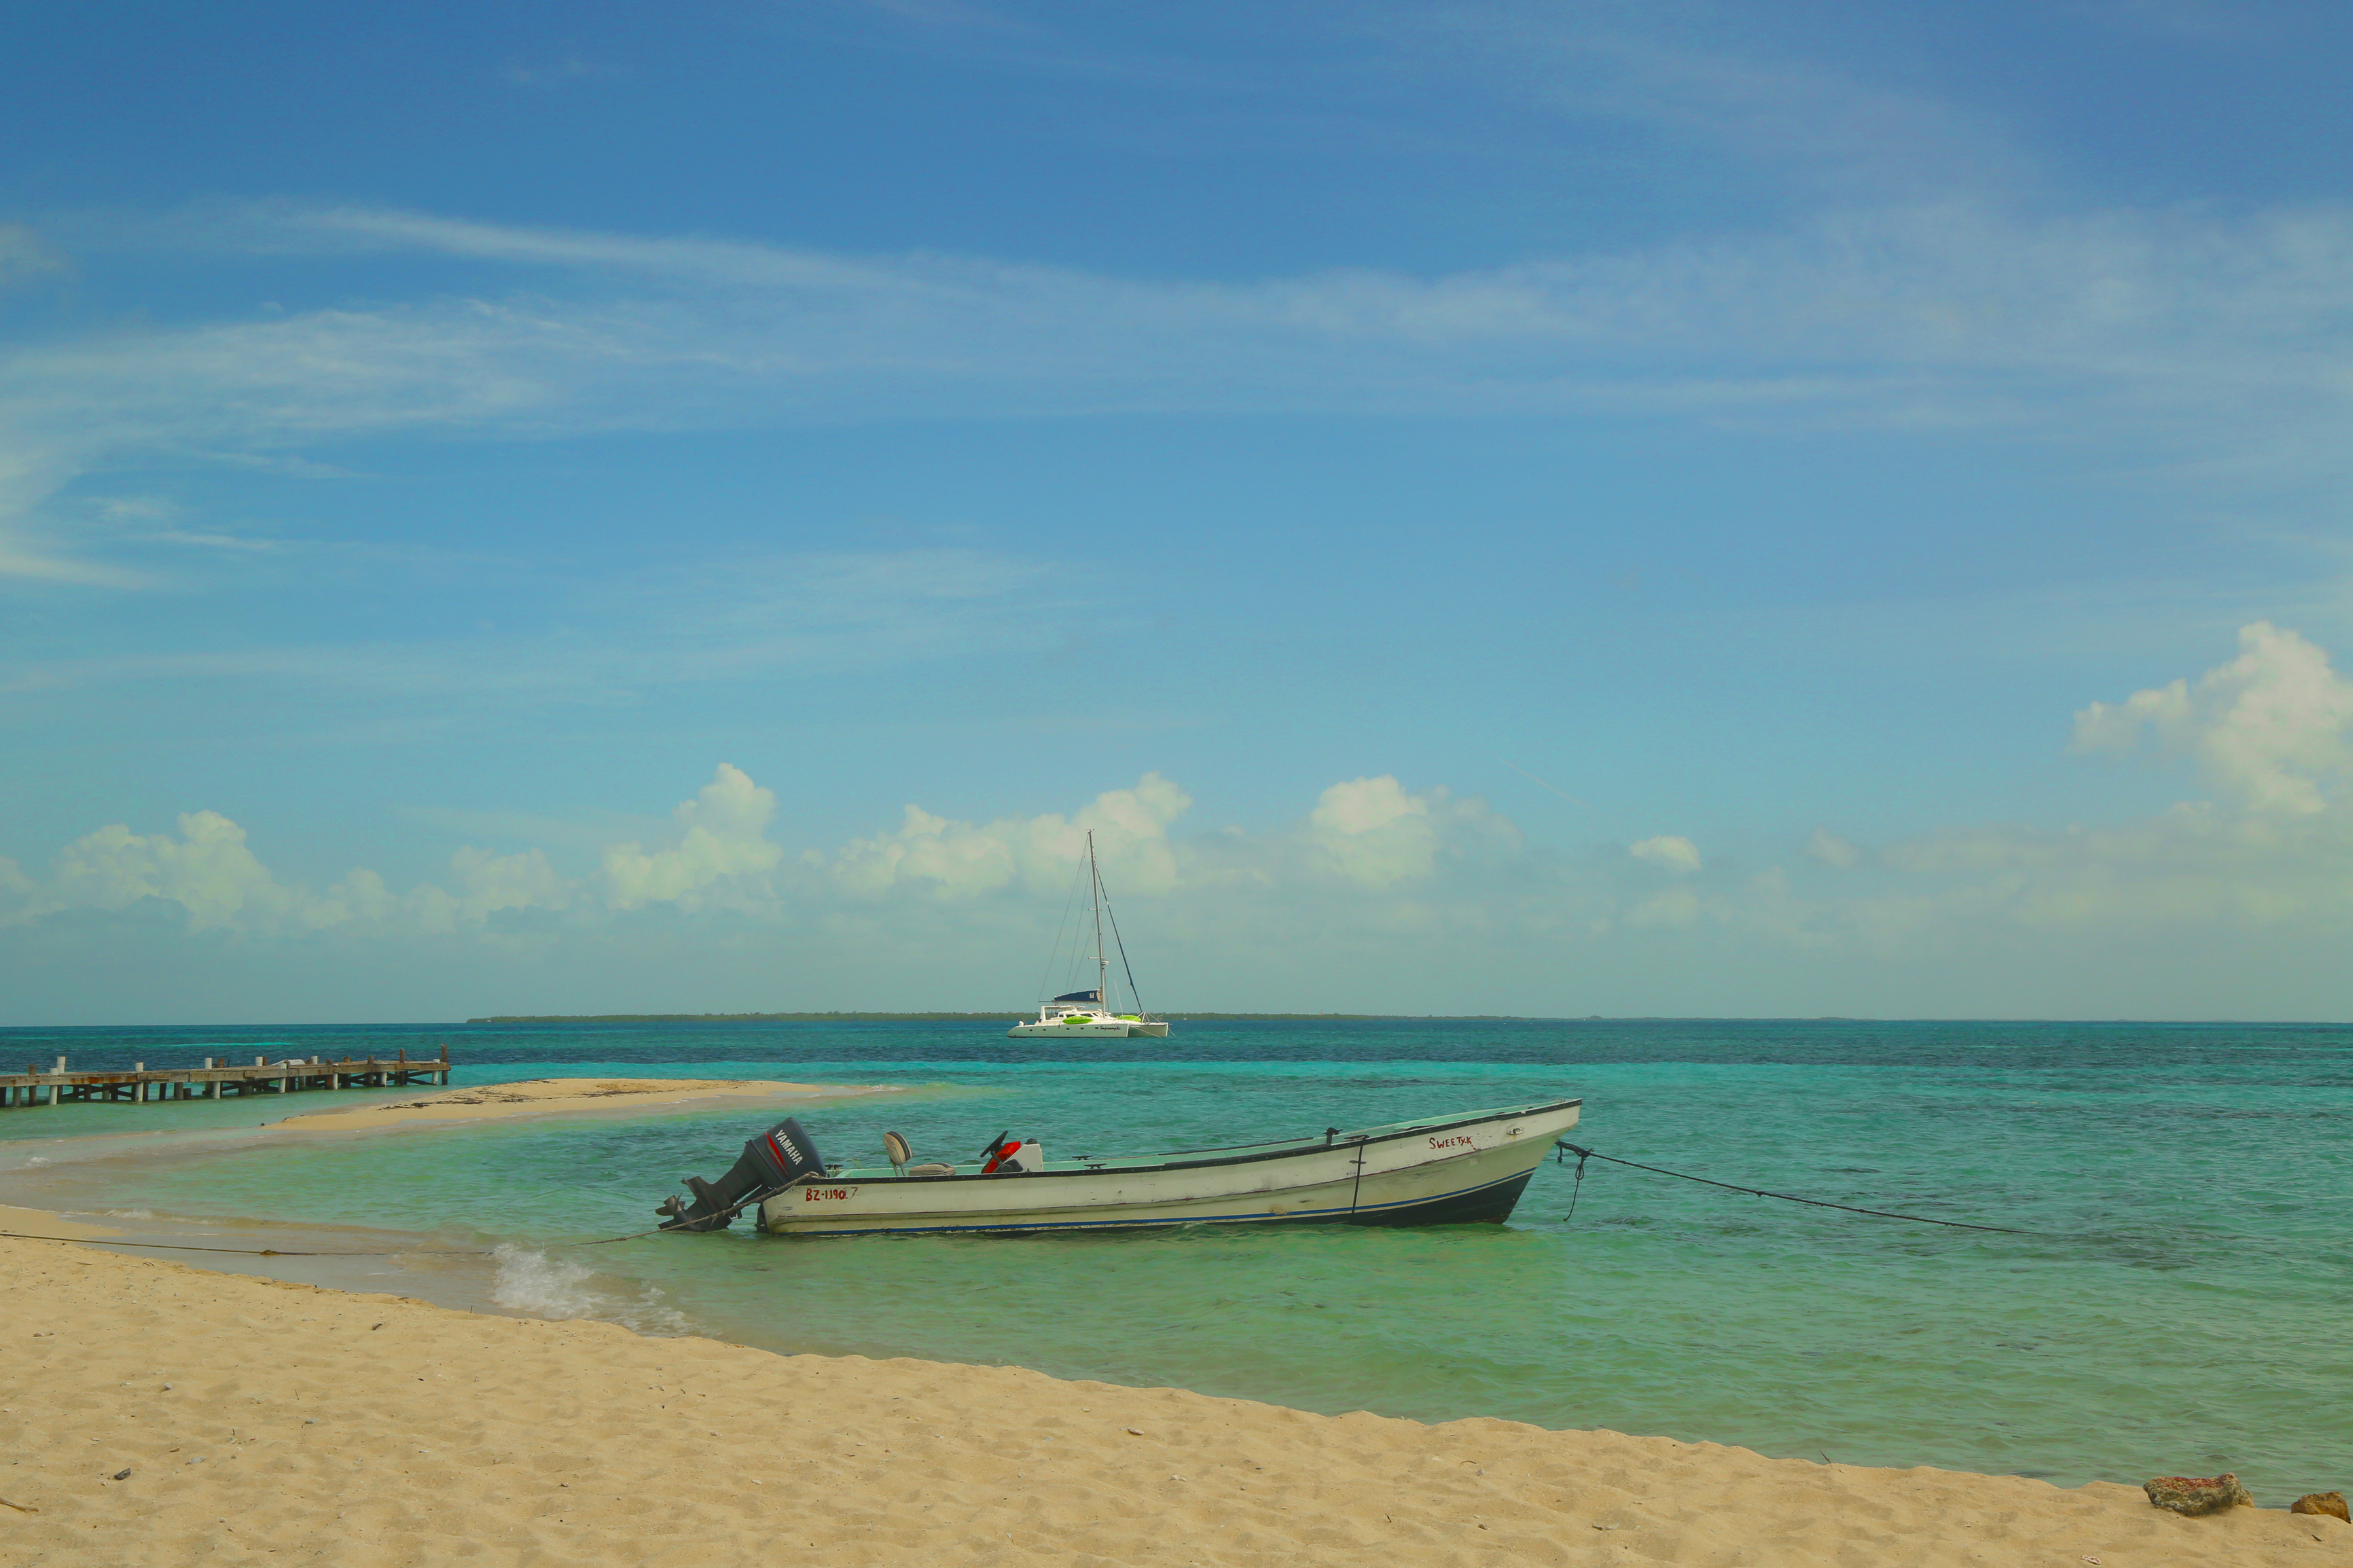 Goff's Caye: A Stunning Island off The Coast of Belize City